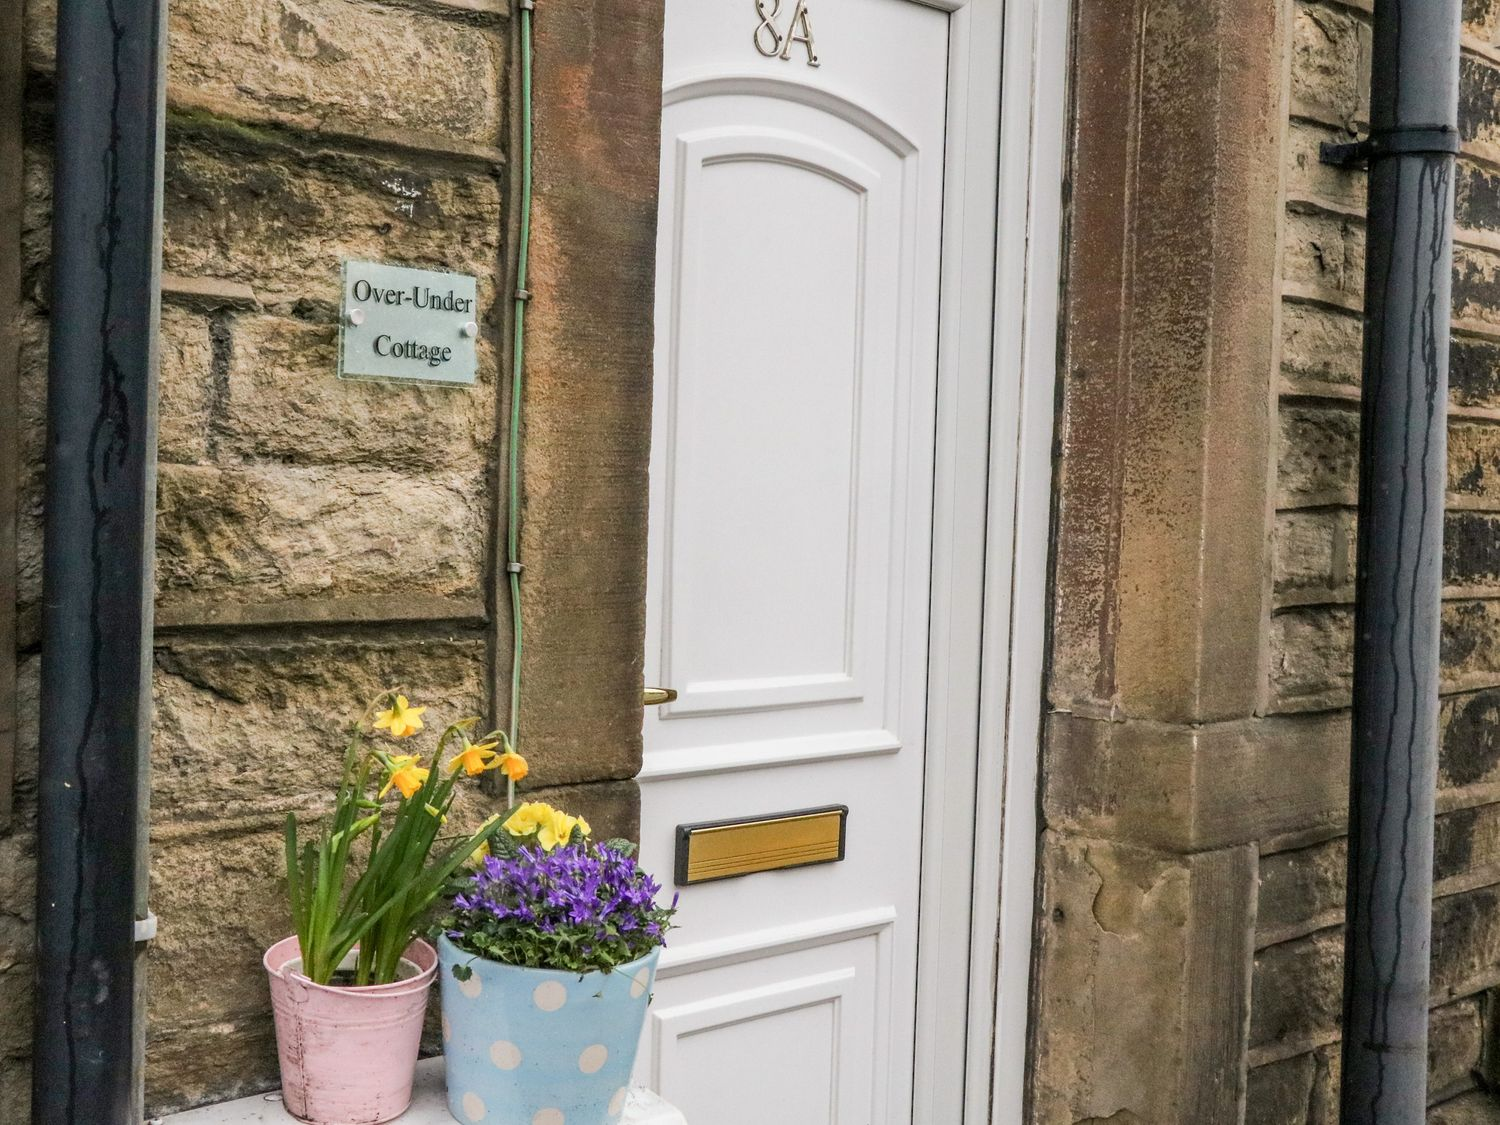 Over-Under Cottage in Holmfirth - sleeps 2 people